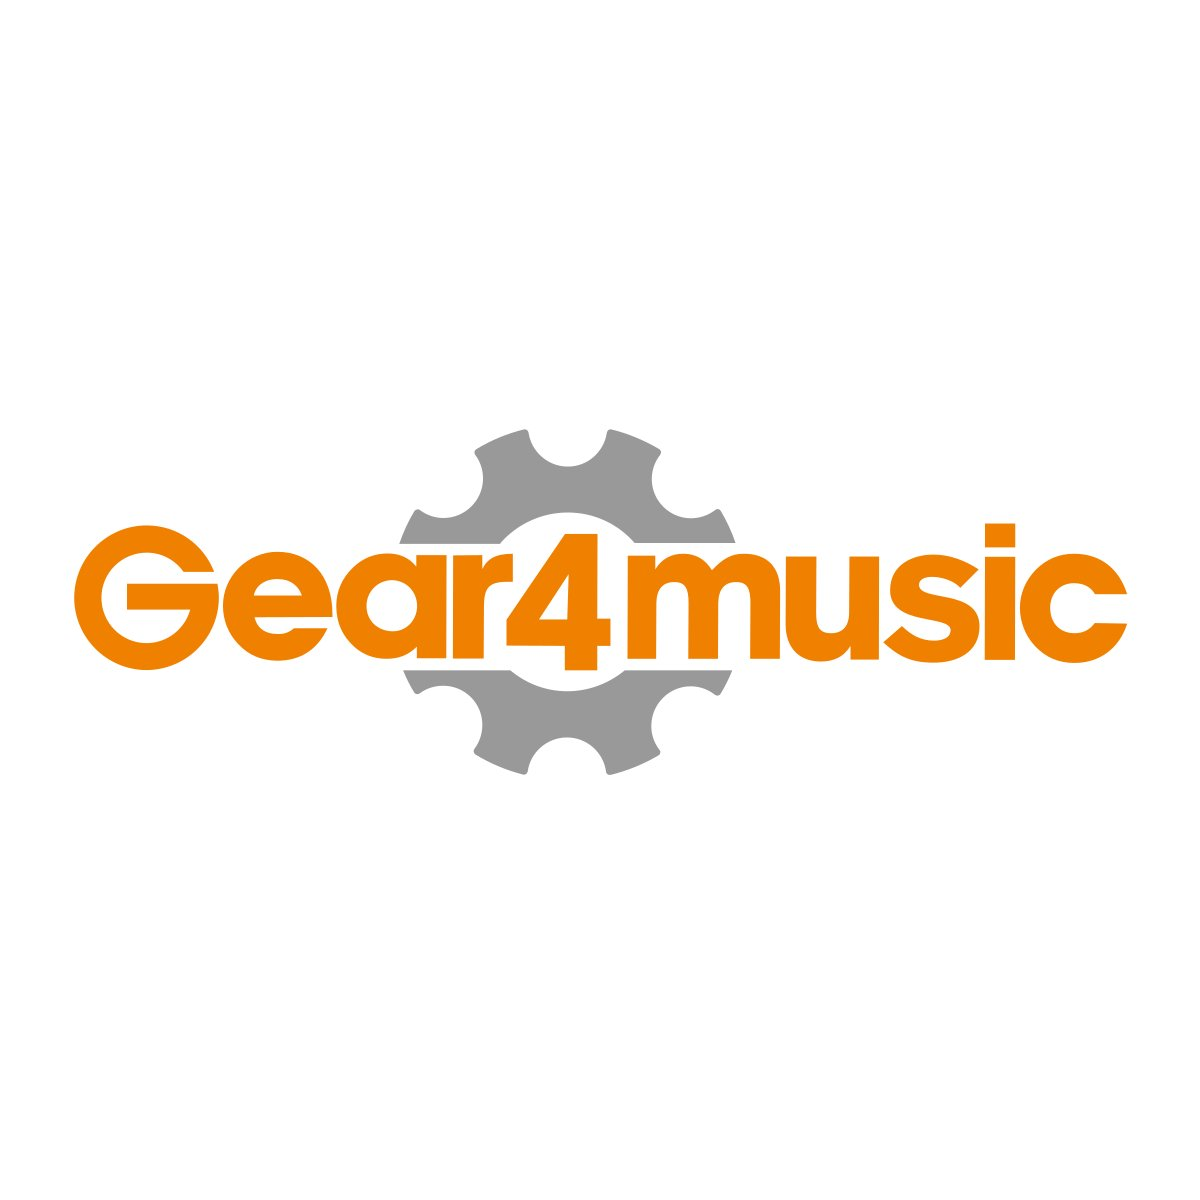 61 tasti tastiera ABS Case di Gear4music